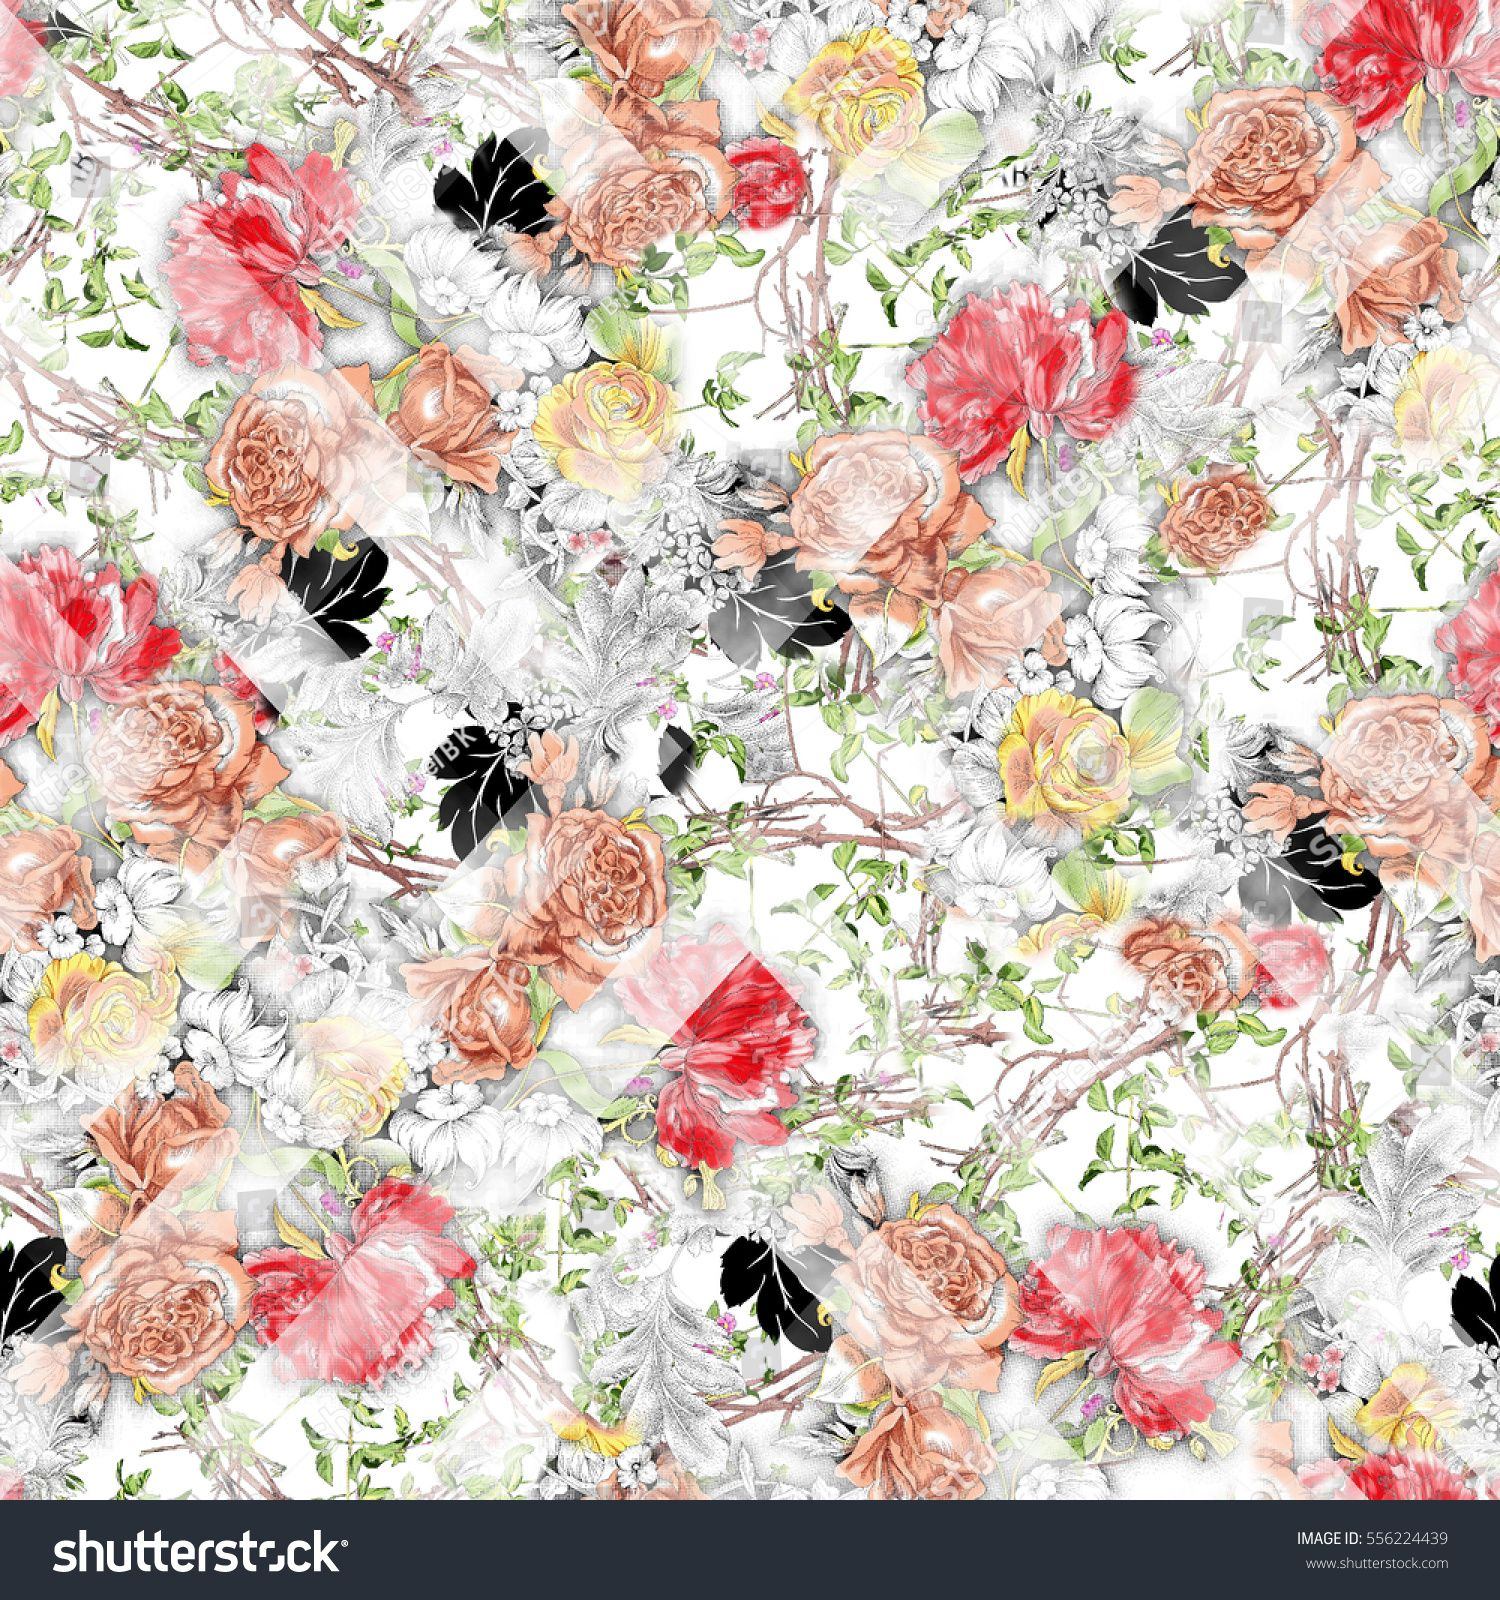 Seamless Raster Pattern Watercolor Flowers On Paper Texture